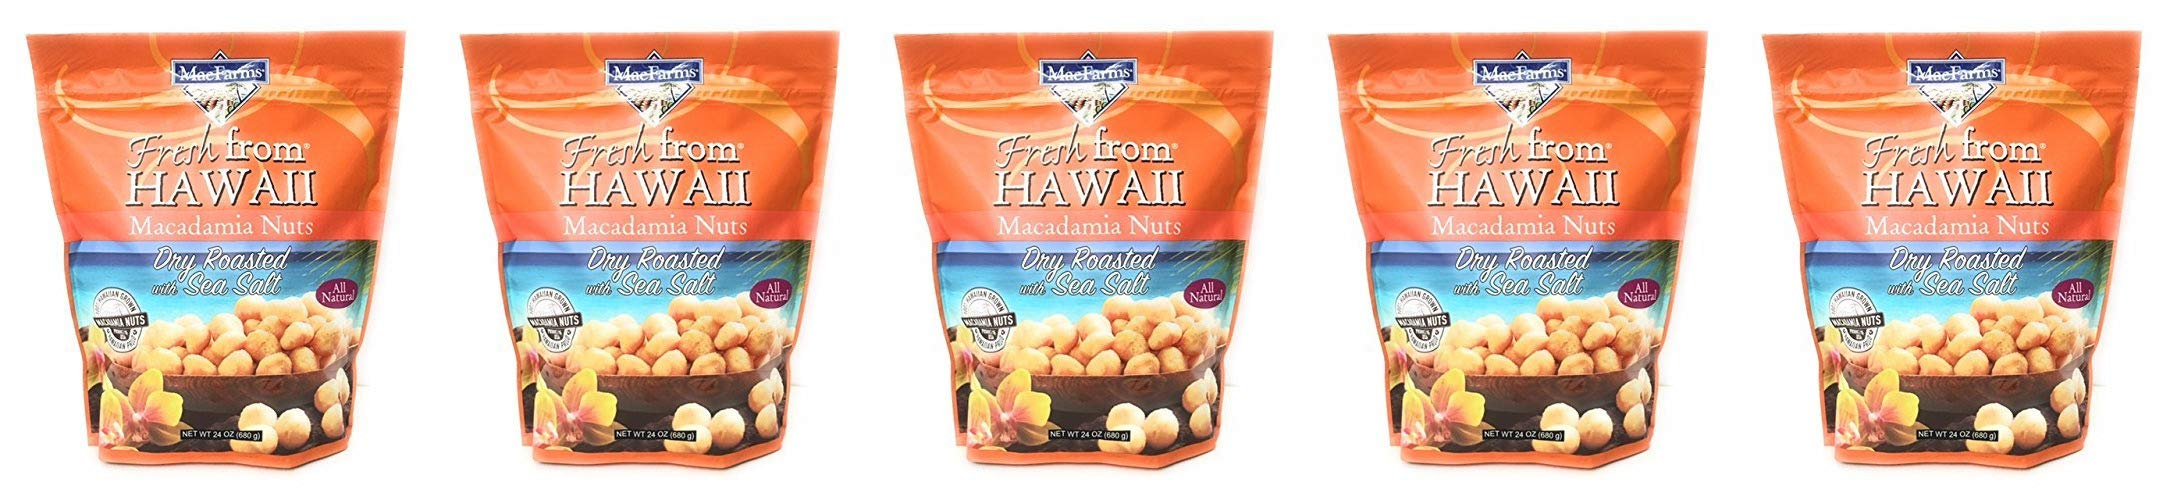 MacFarms Dry Roasted Macadamia Nuts With Sea Salt Fresh From Hawaii 24 Ounce (5 pack)